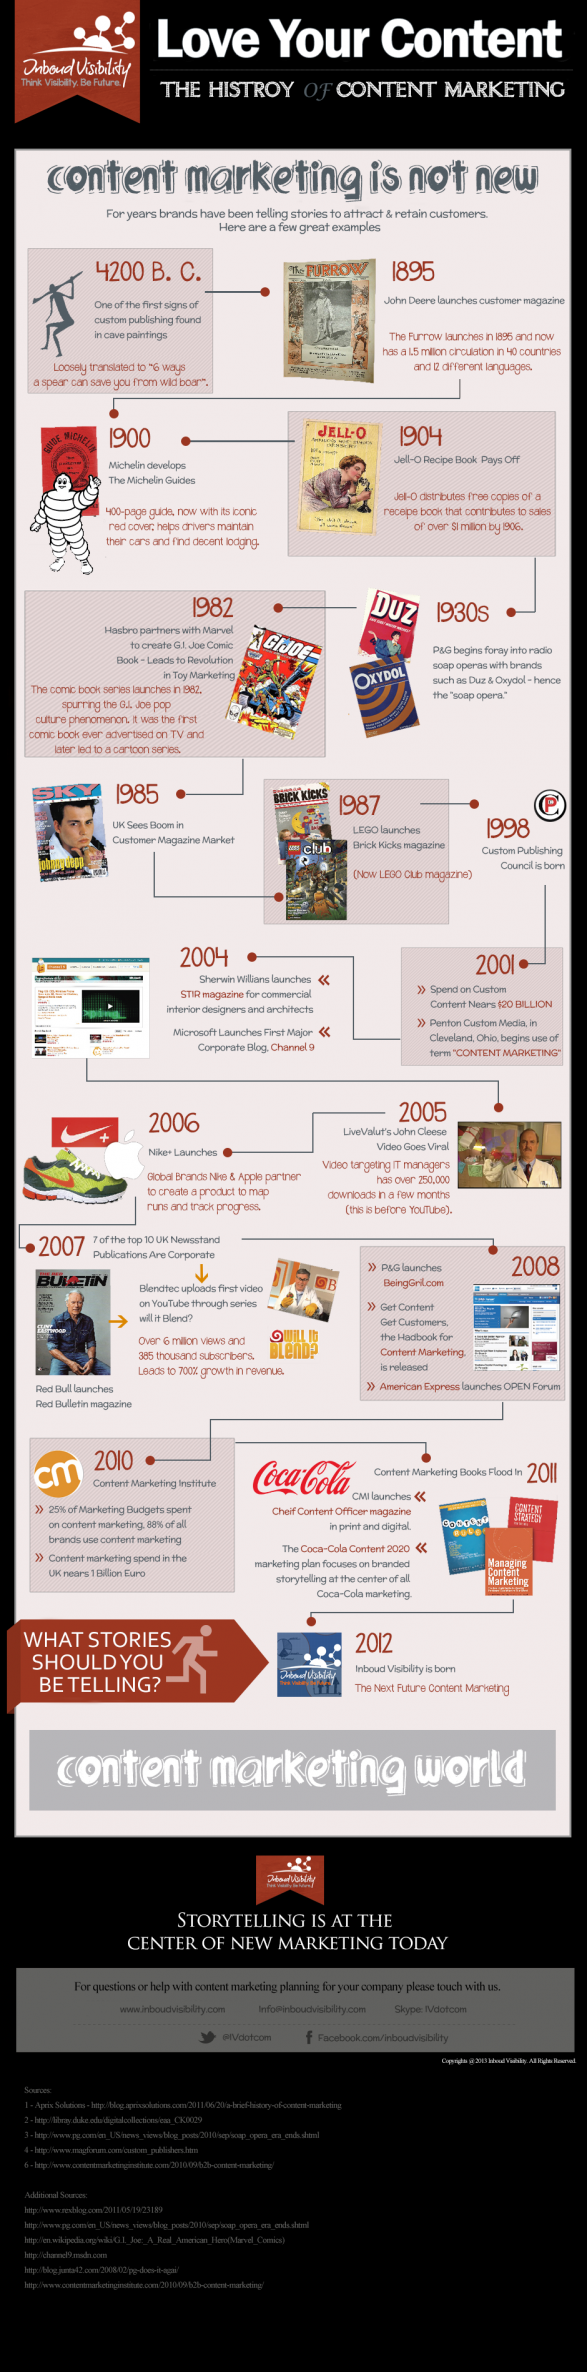 Love Your Content - History of Content Marketing World